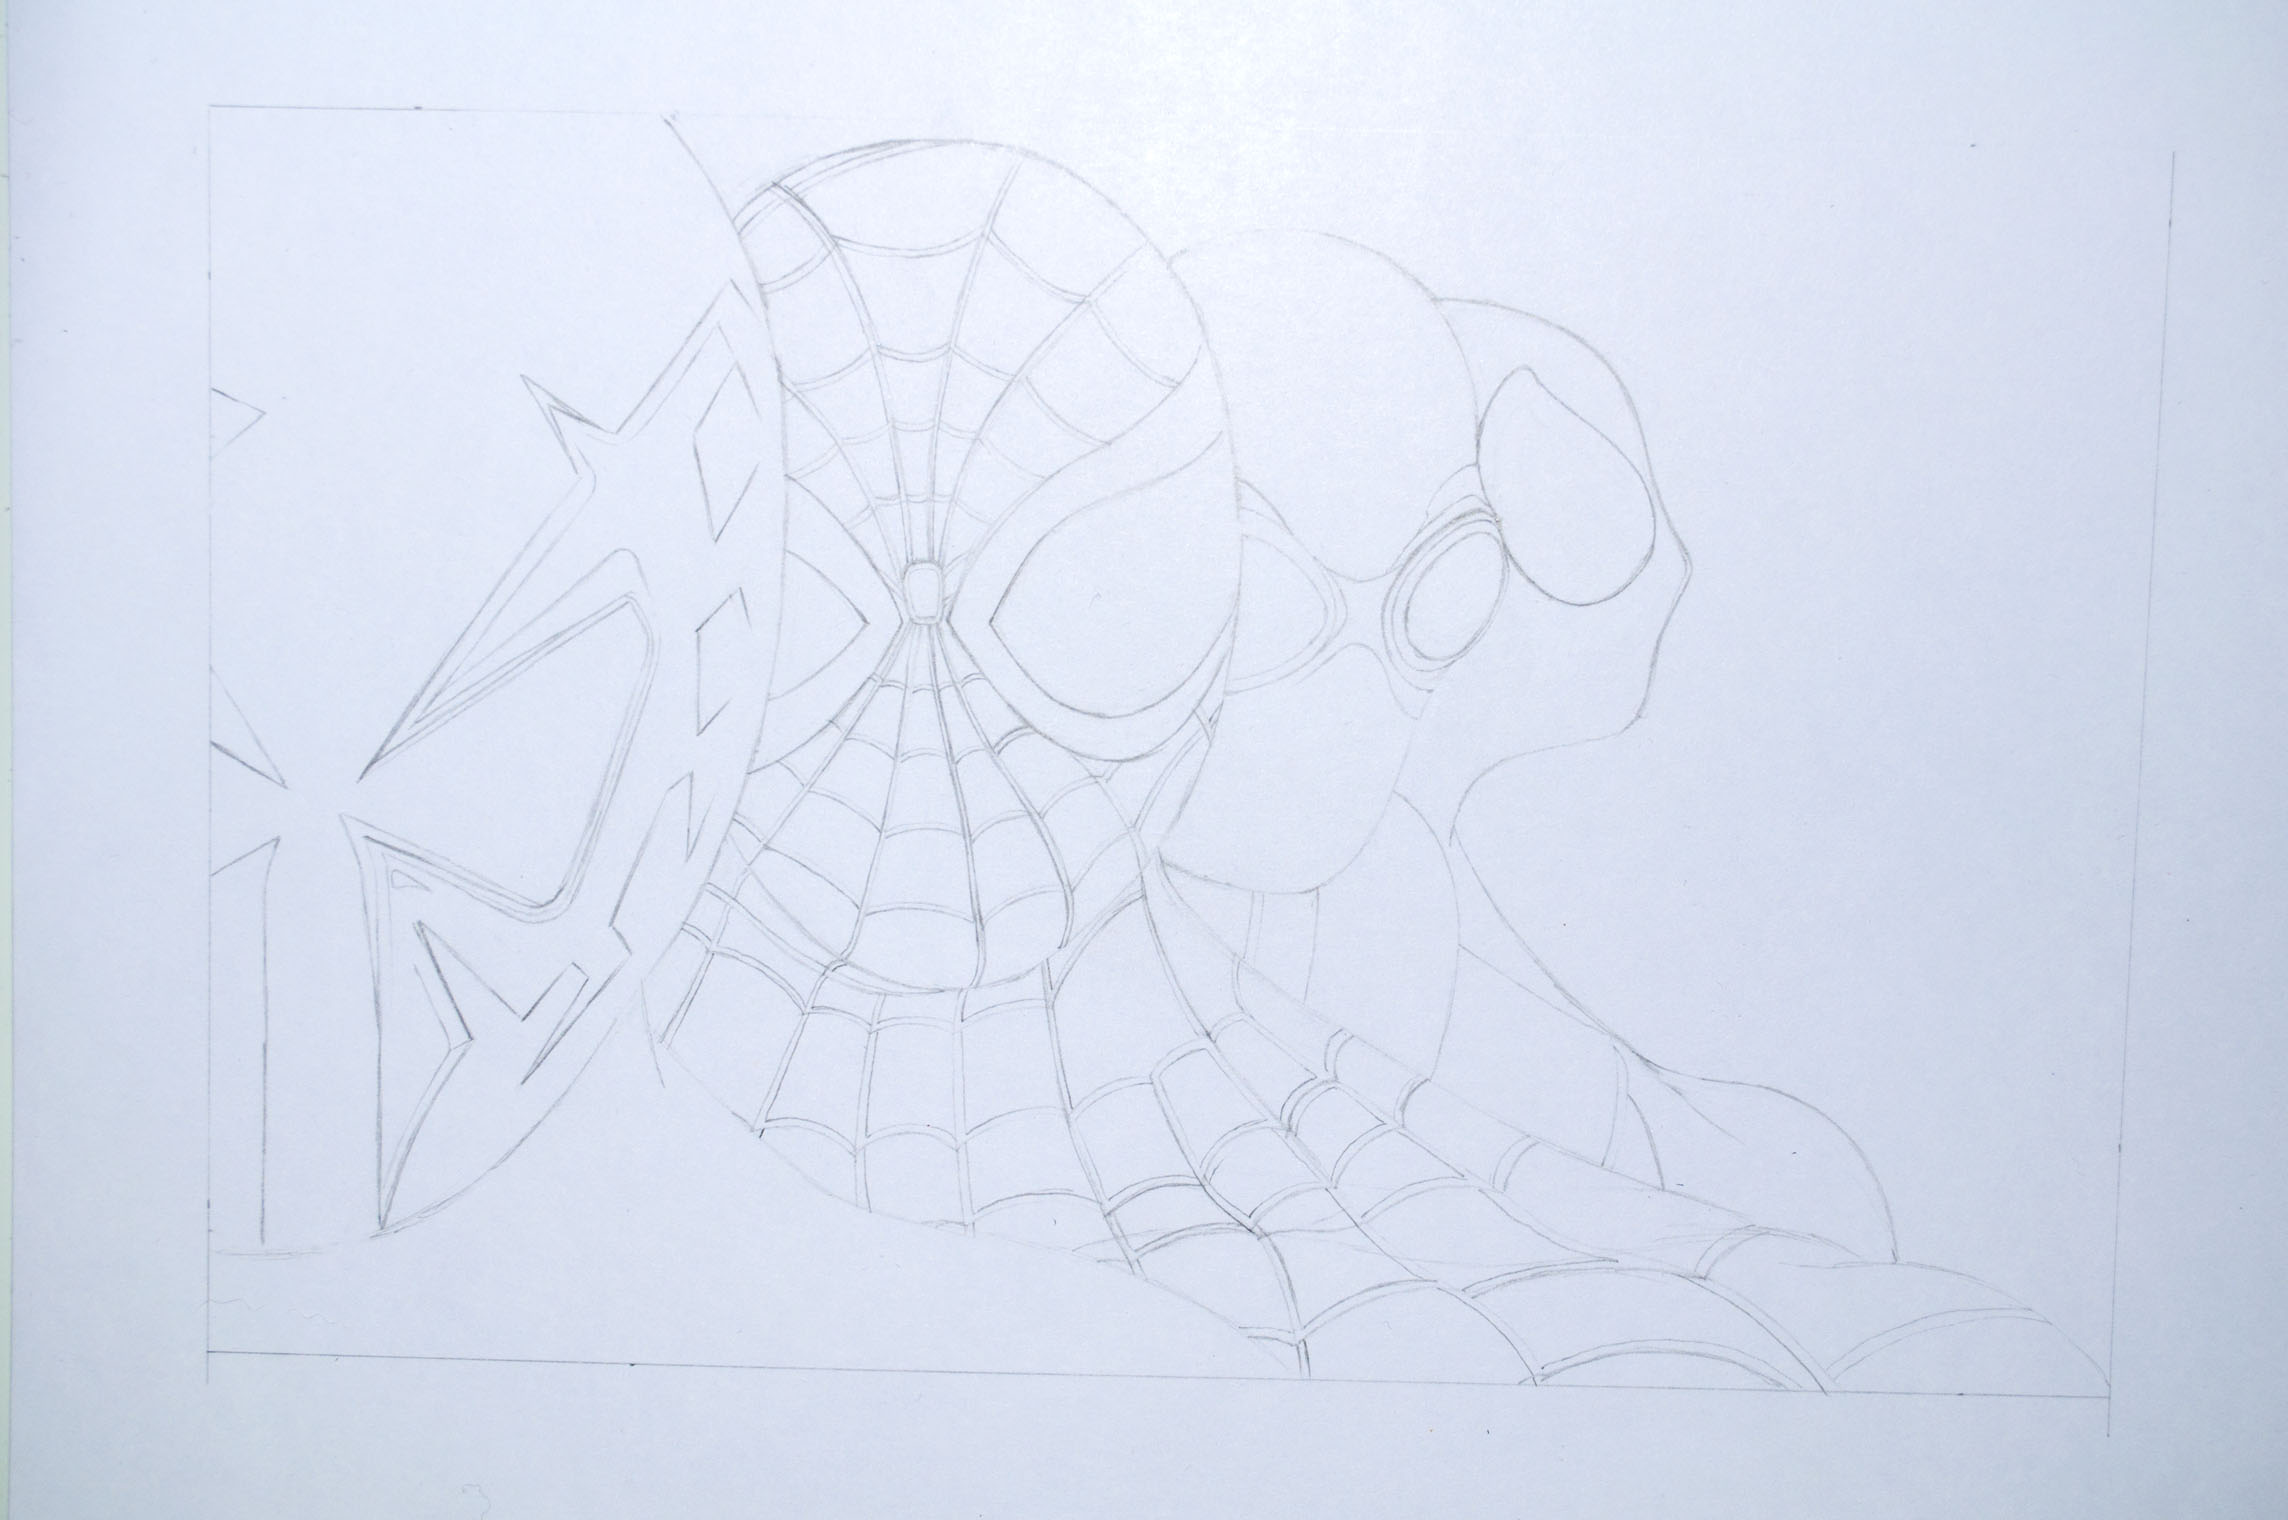 Spiderman Sketch.jpg